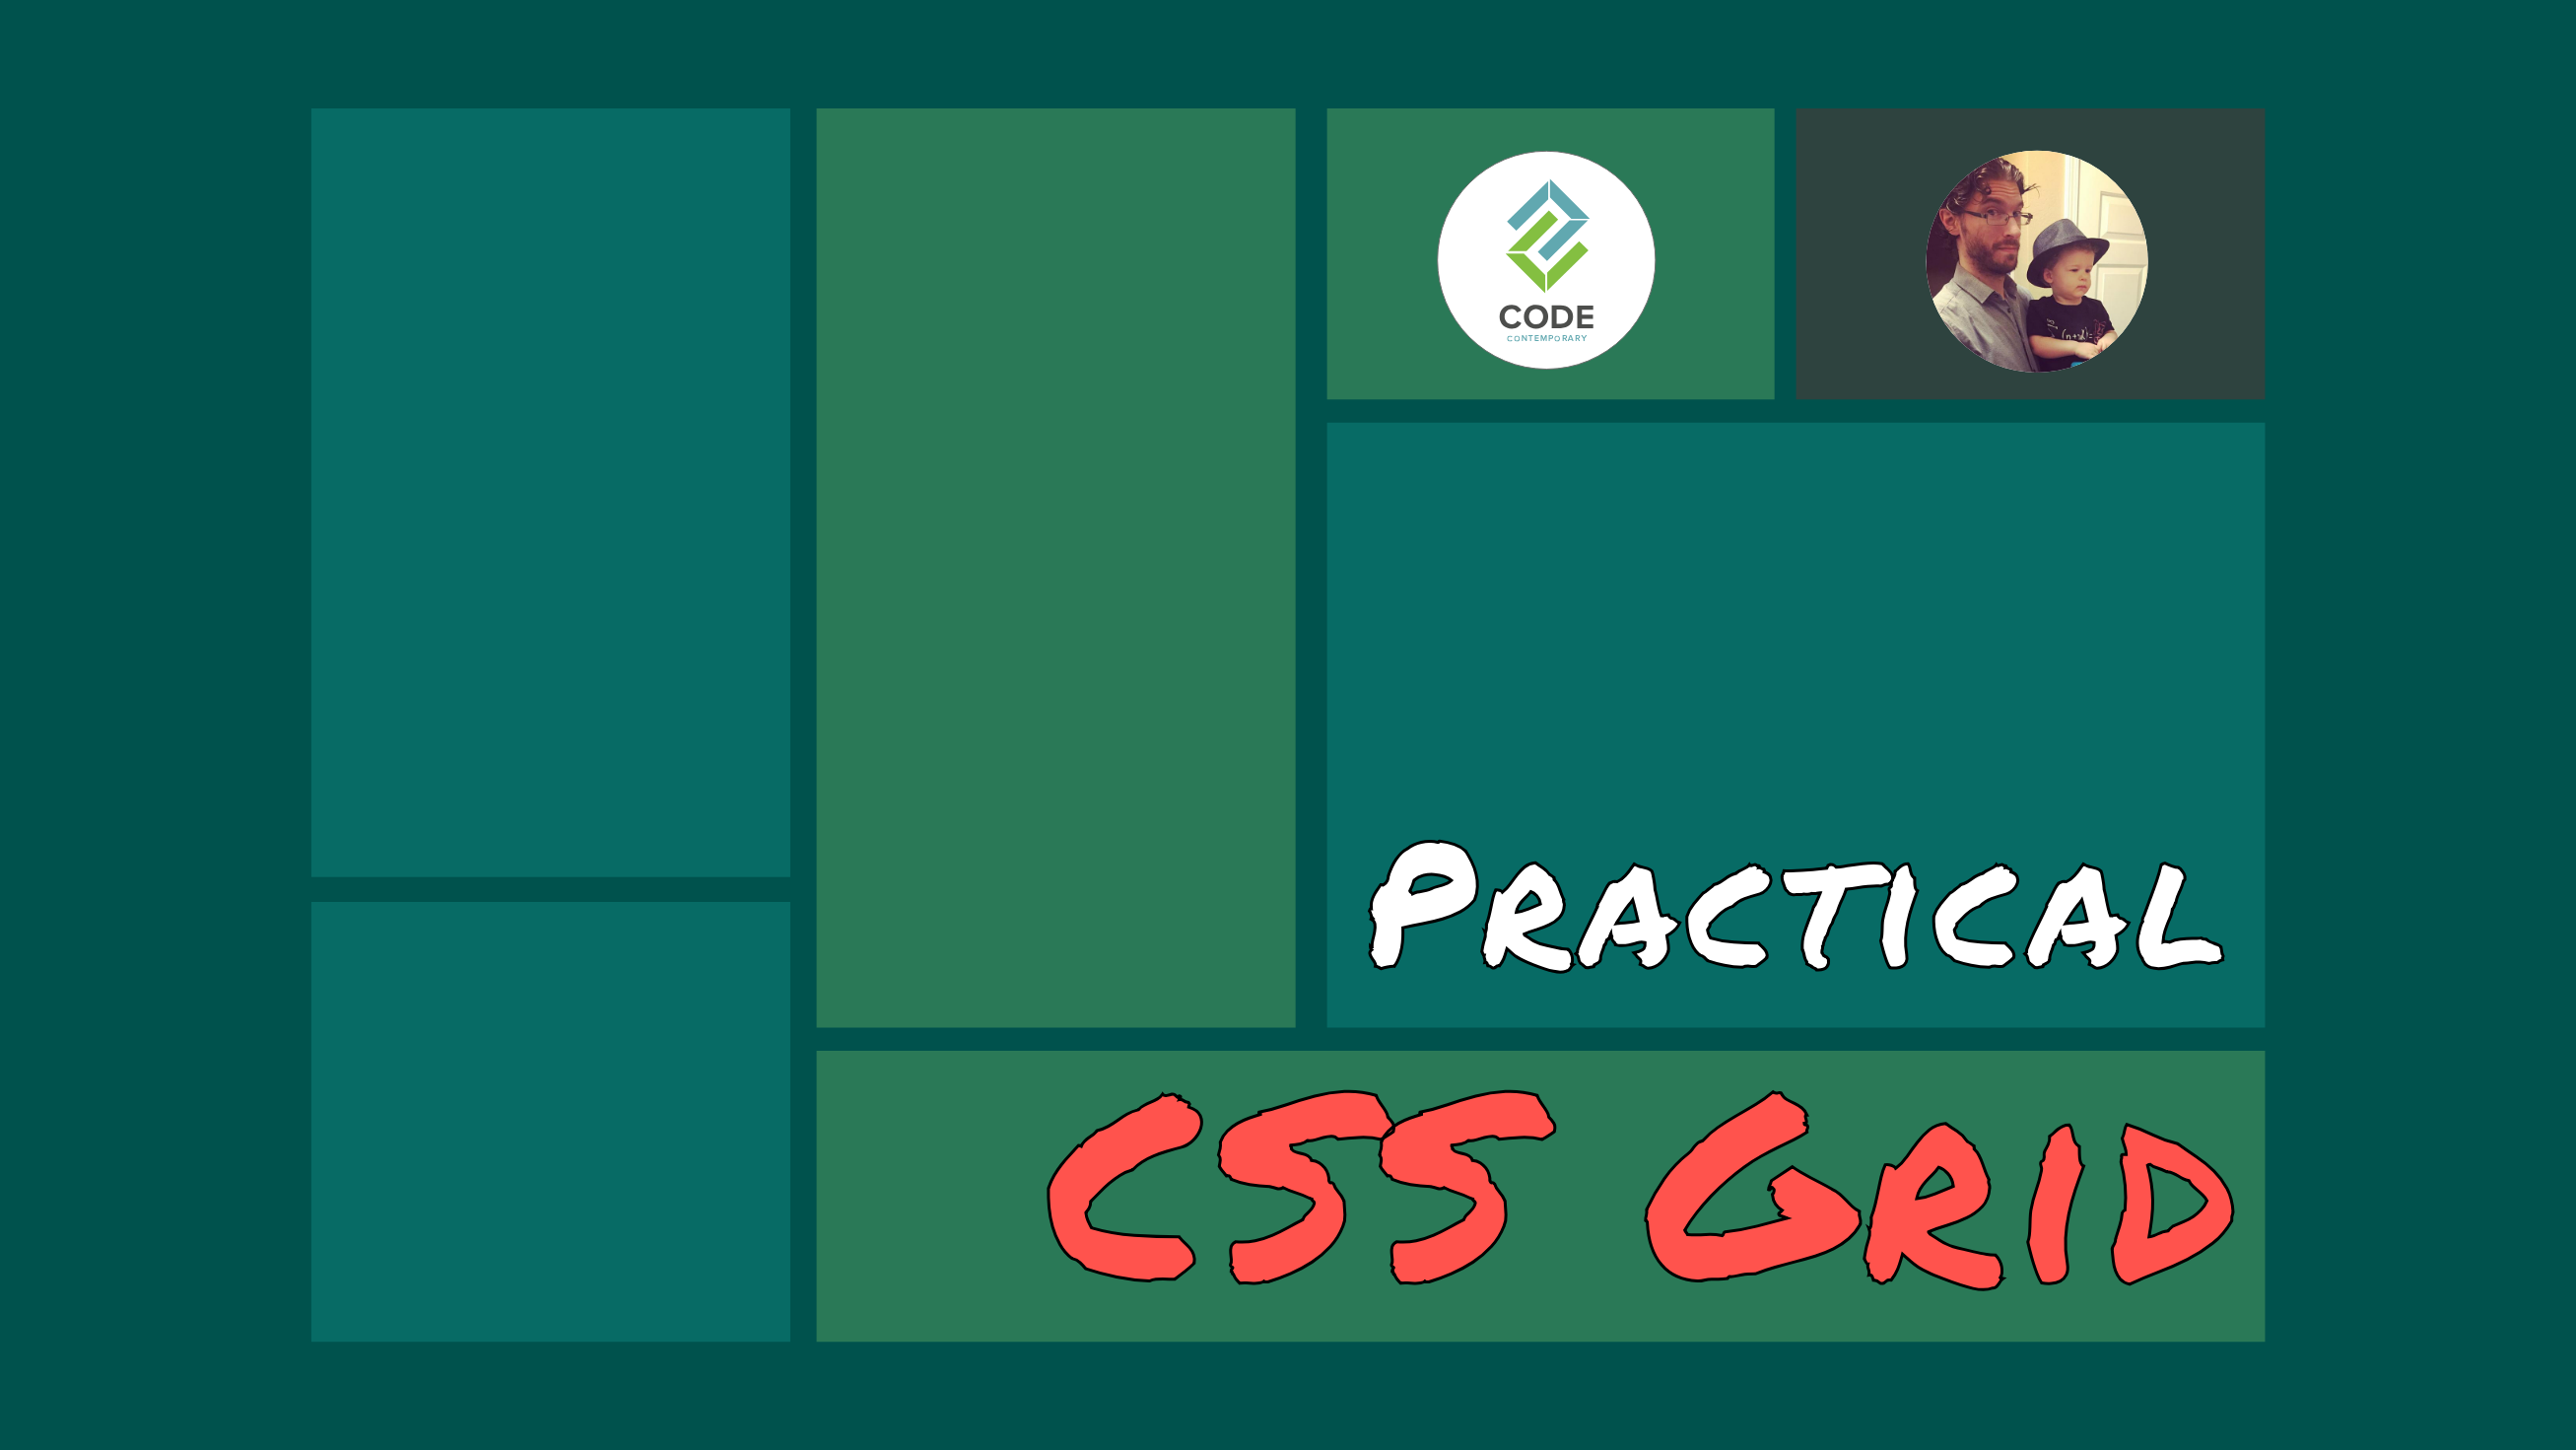 Practical CSS Grid - Launching My First Course